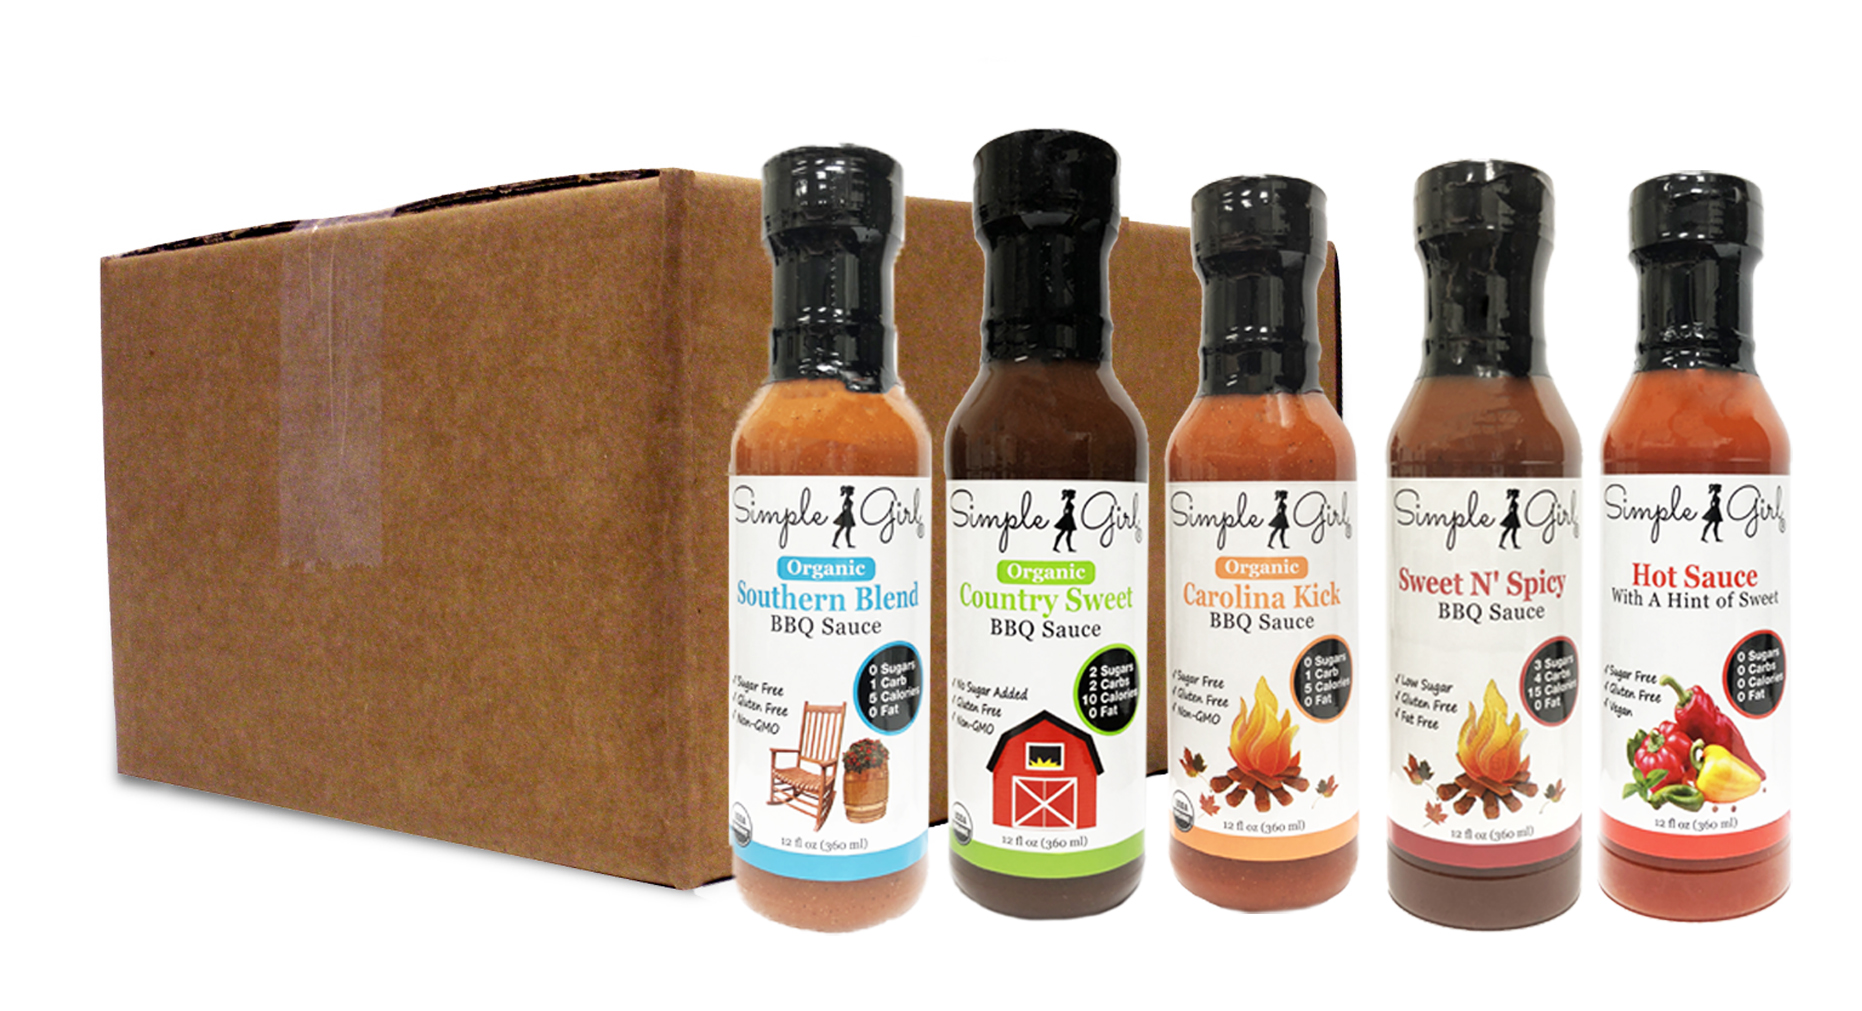 all-sauces-emd-box.jpg